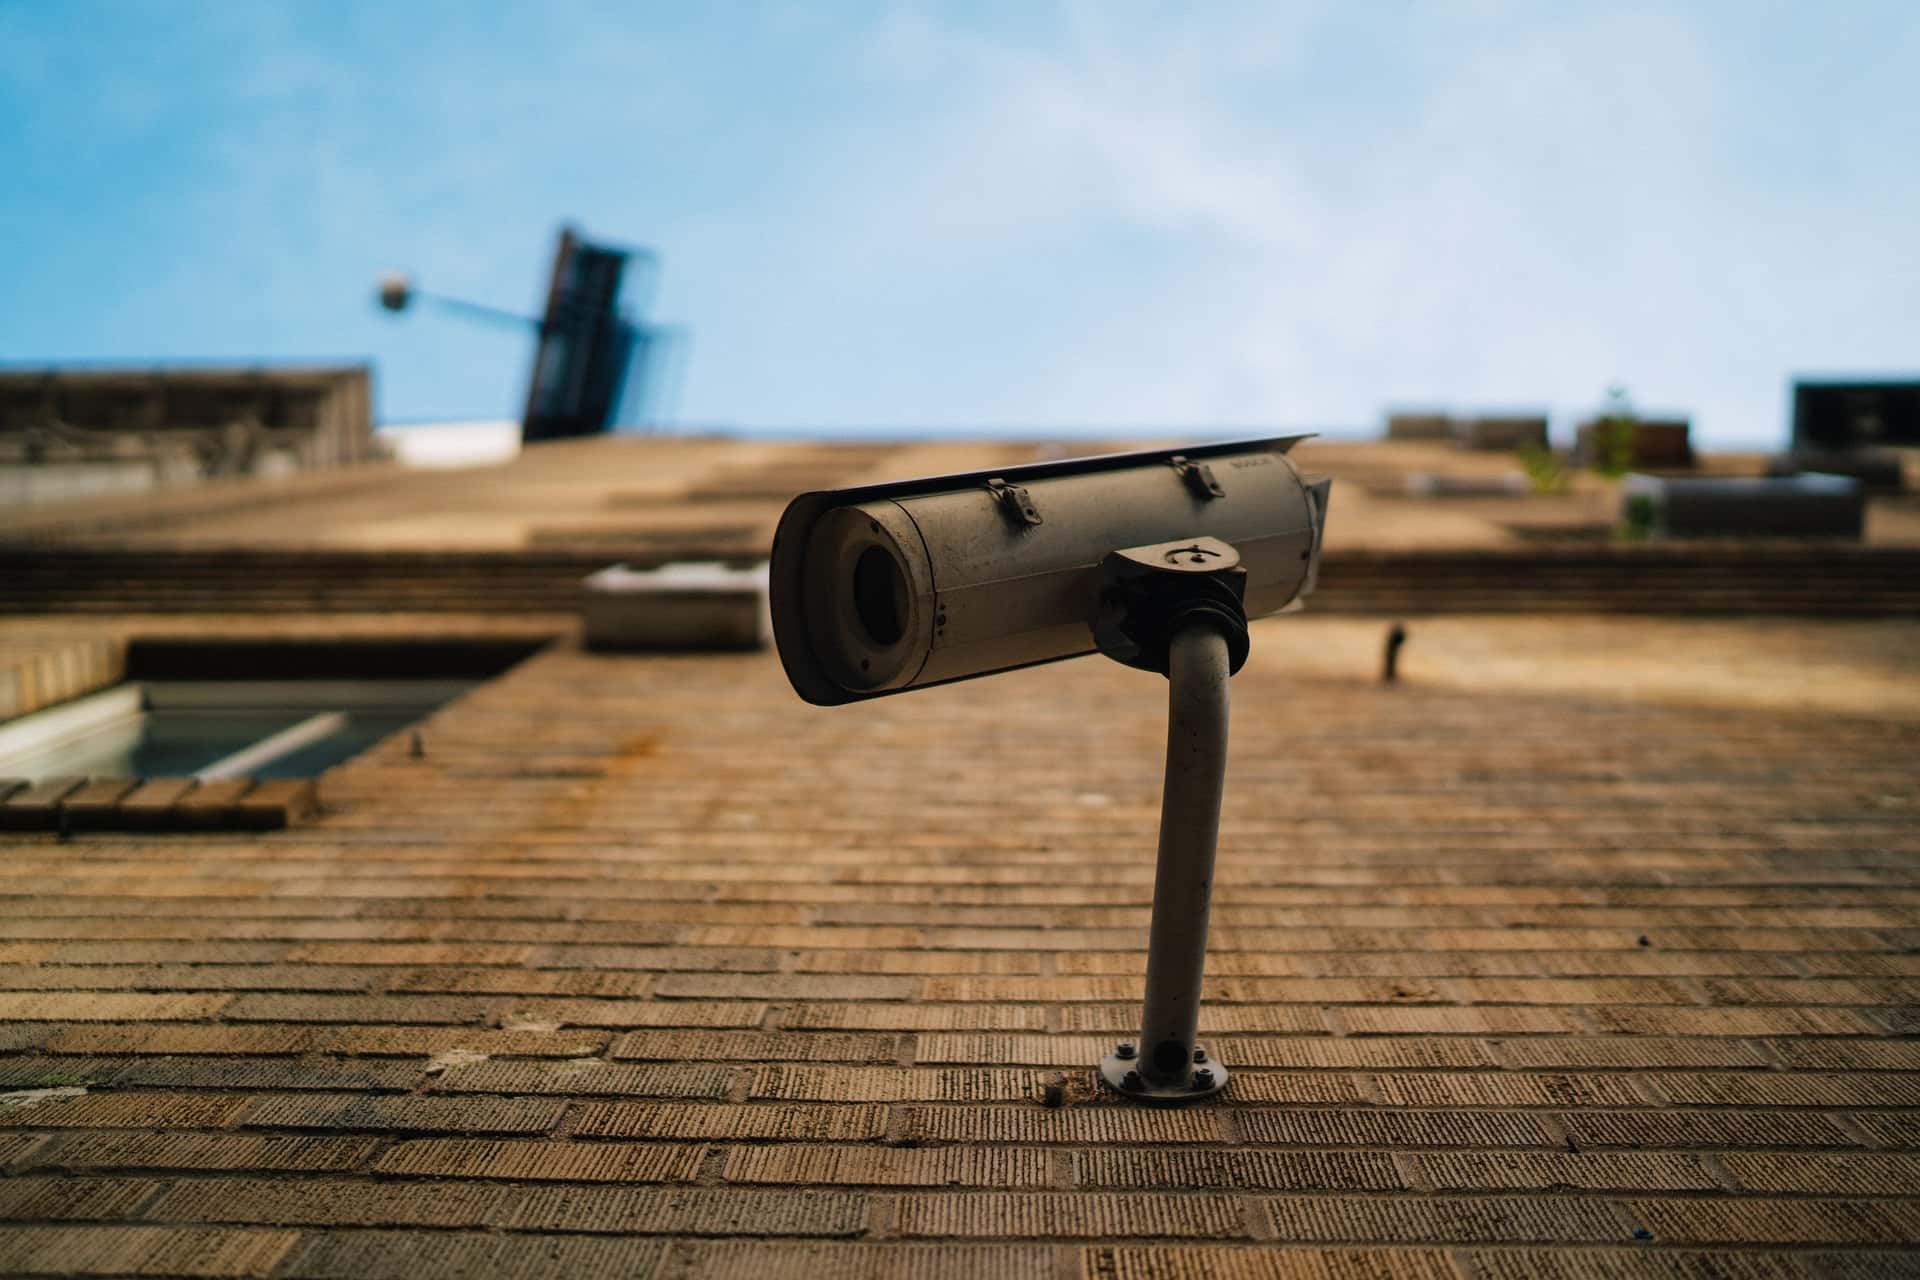 An image showing a cctv camera attached to a property that is remaining compliant with CCTV laws.